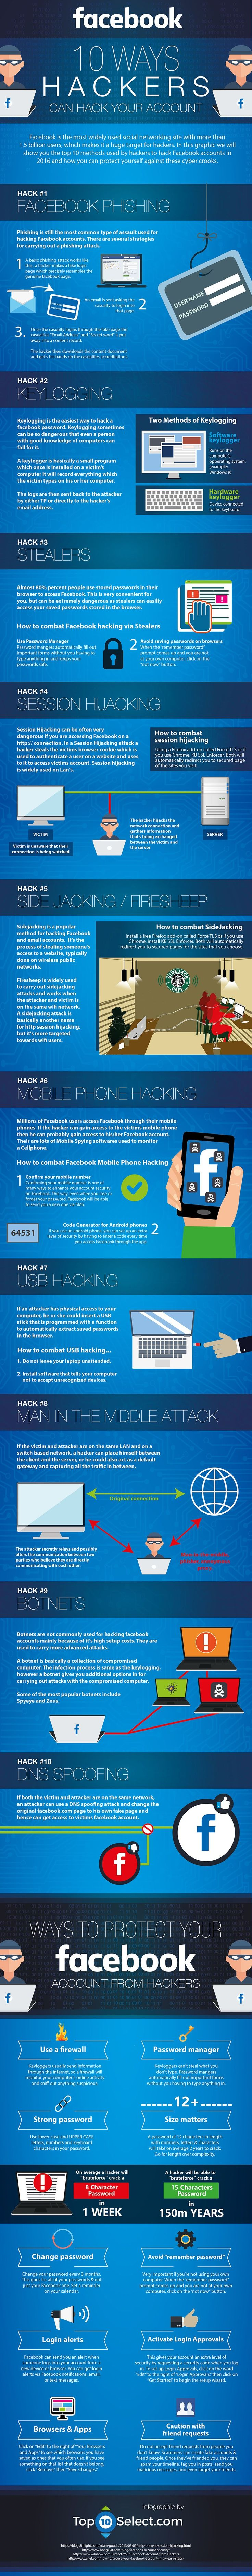 33 best Cyber Security images on Pinterest | Safety, Info graphics ...